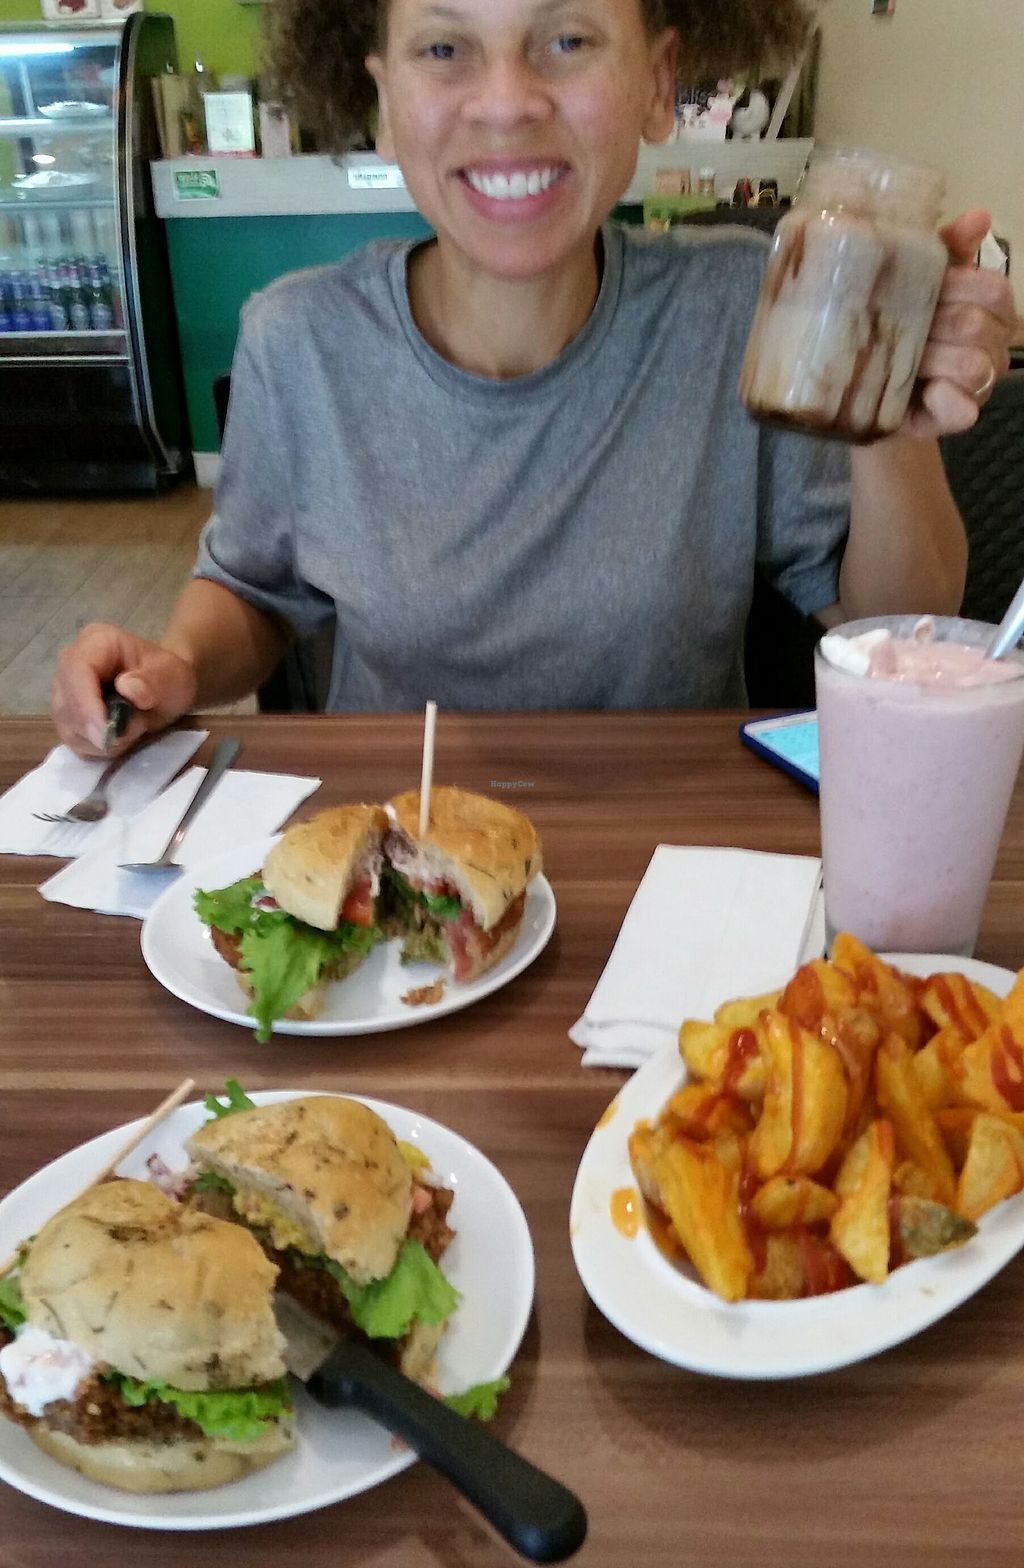 """Photo of Vurgers  by <a href=""""/members/profile/DarrenGordon"""">DarrenGordon</a> <br/>The food <br/> July 9, 2017  - <a href='/contact/abuse/image/69543/278082'>Report</a>"""